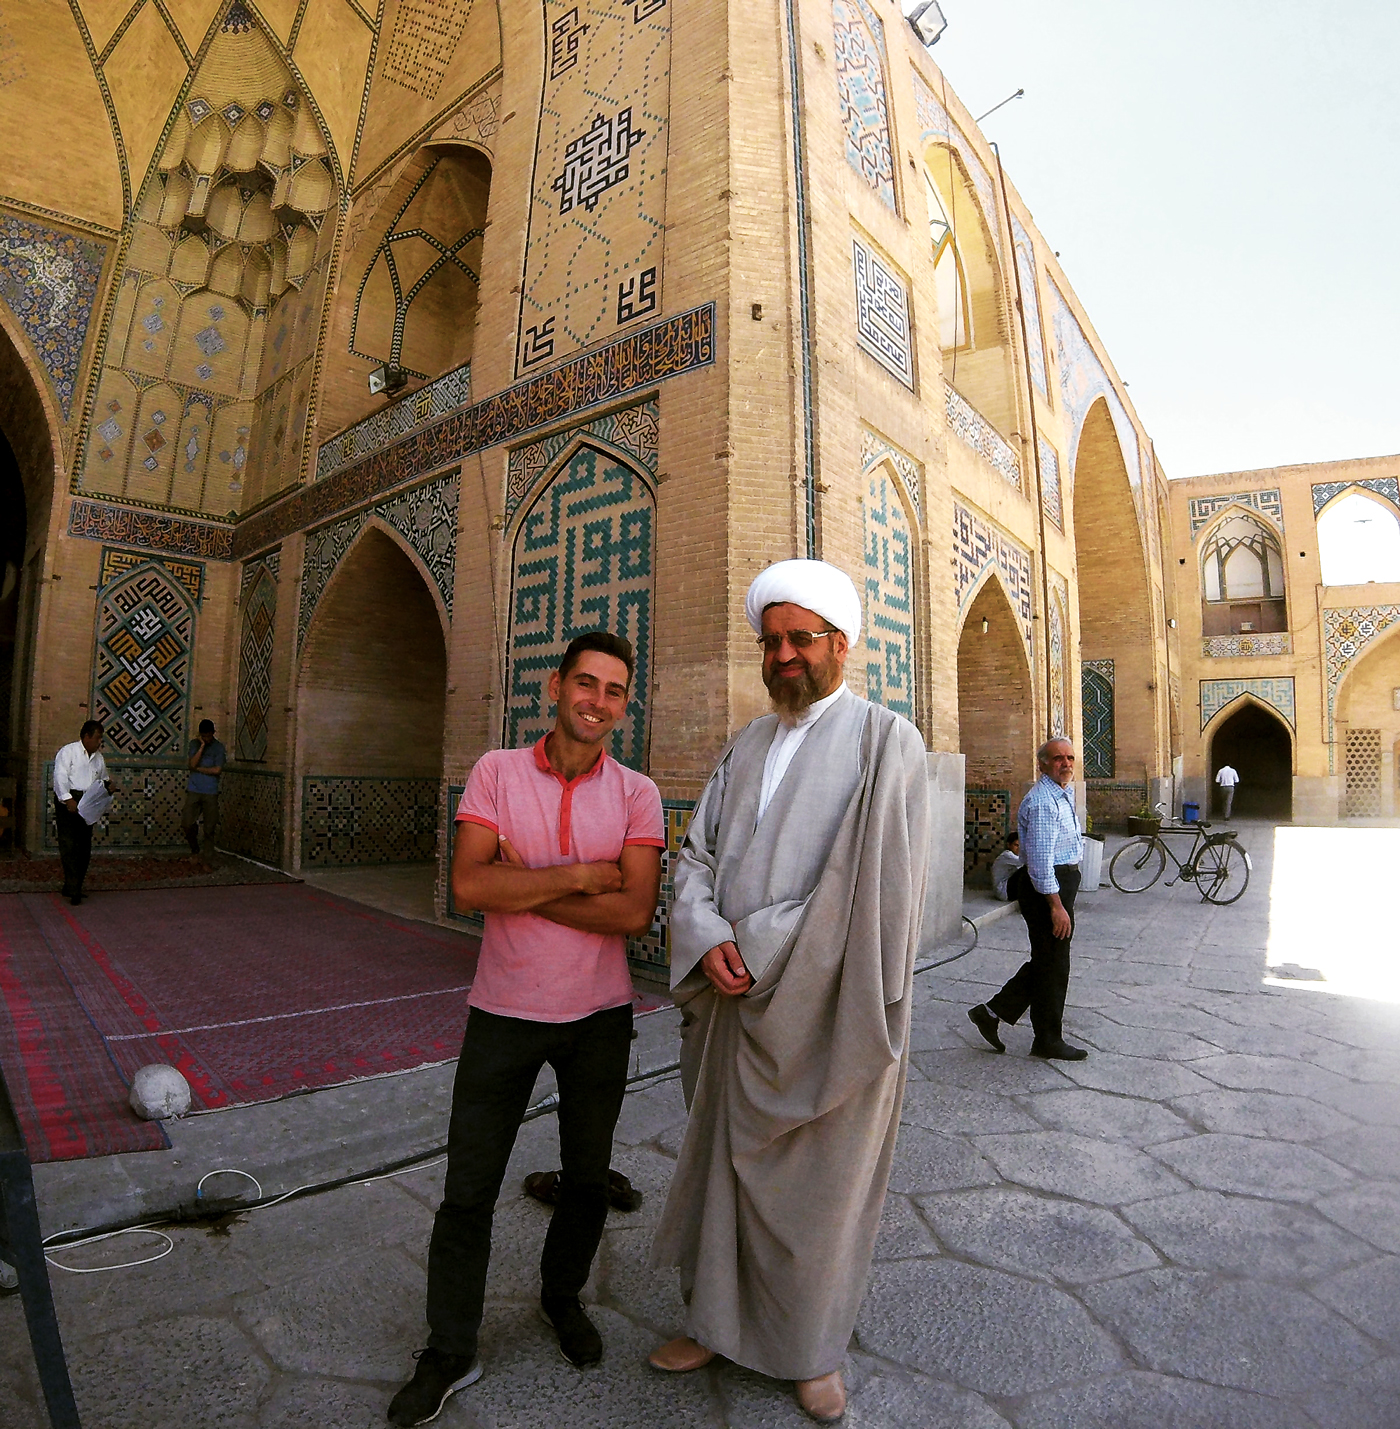 Cycling, crossing Iran by bicycle, with Mullah Haj Agha (religious leader in Shia Islam) from the Hakim Mosque in Isfahan. Cycling travel, biketouring, cycling Iran, with the mullah (religious leader in Shiite Islam) of Hakim Mosque in Isfahan.